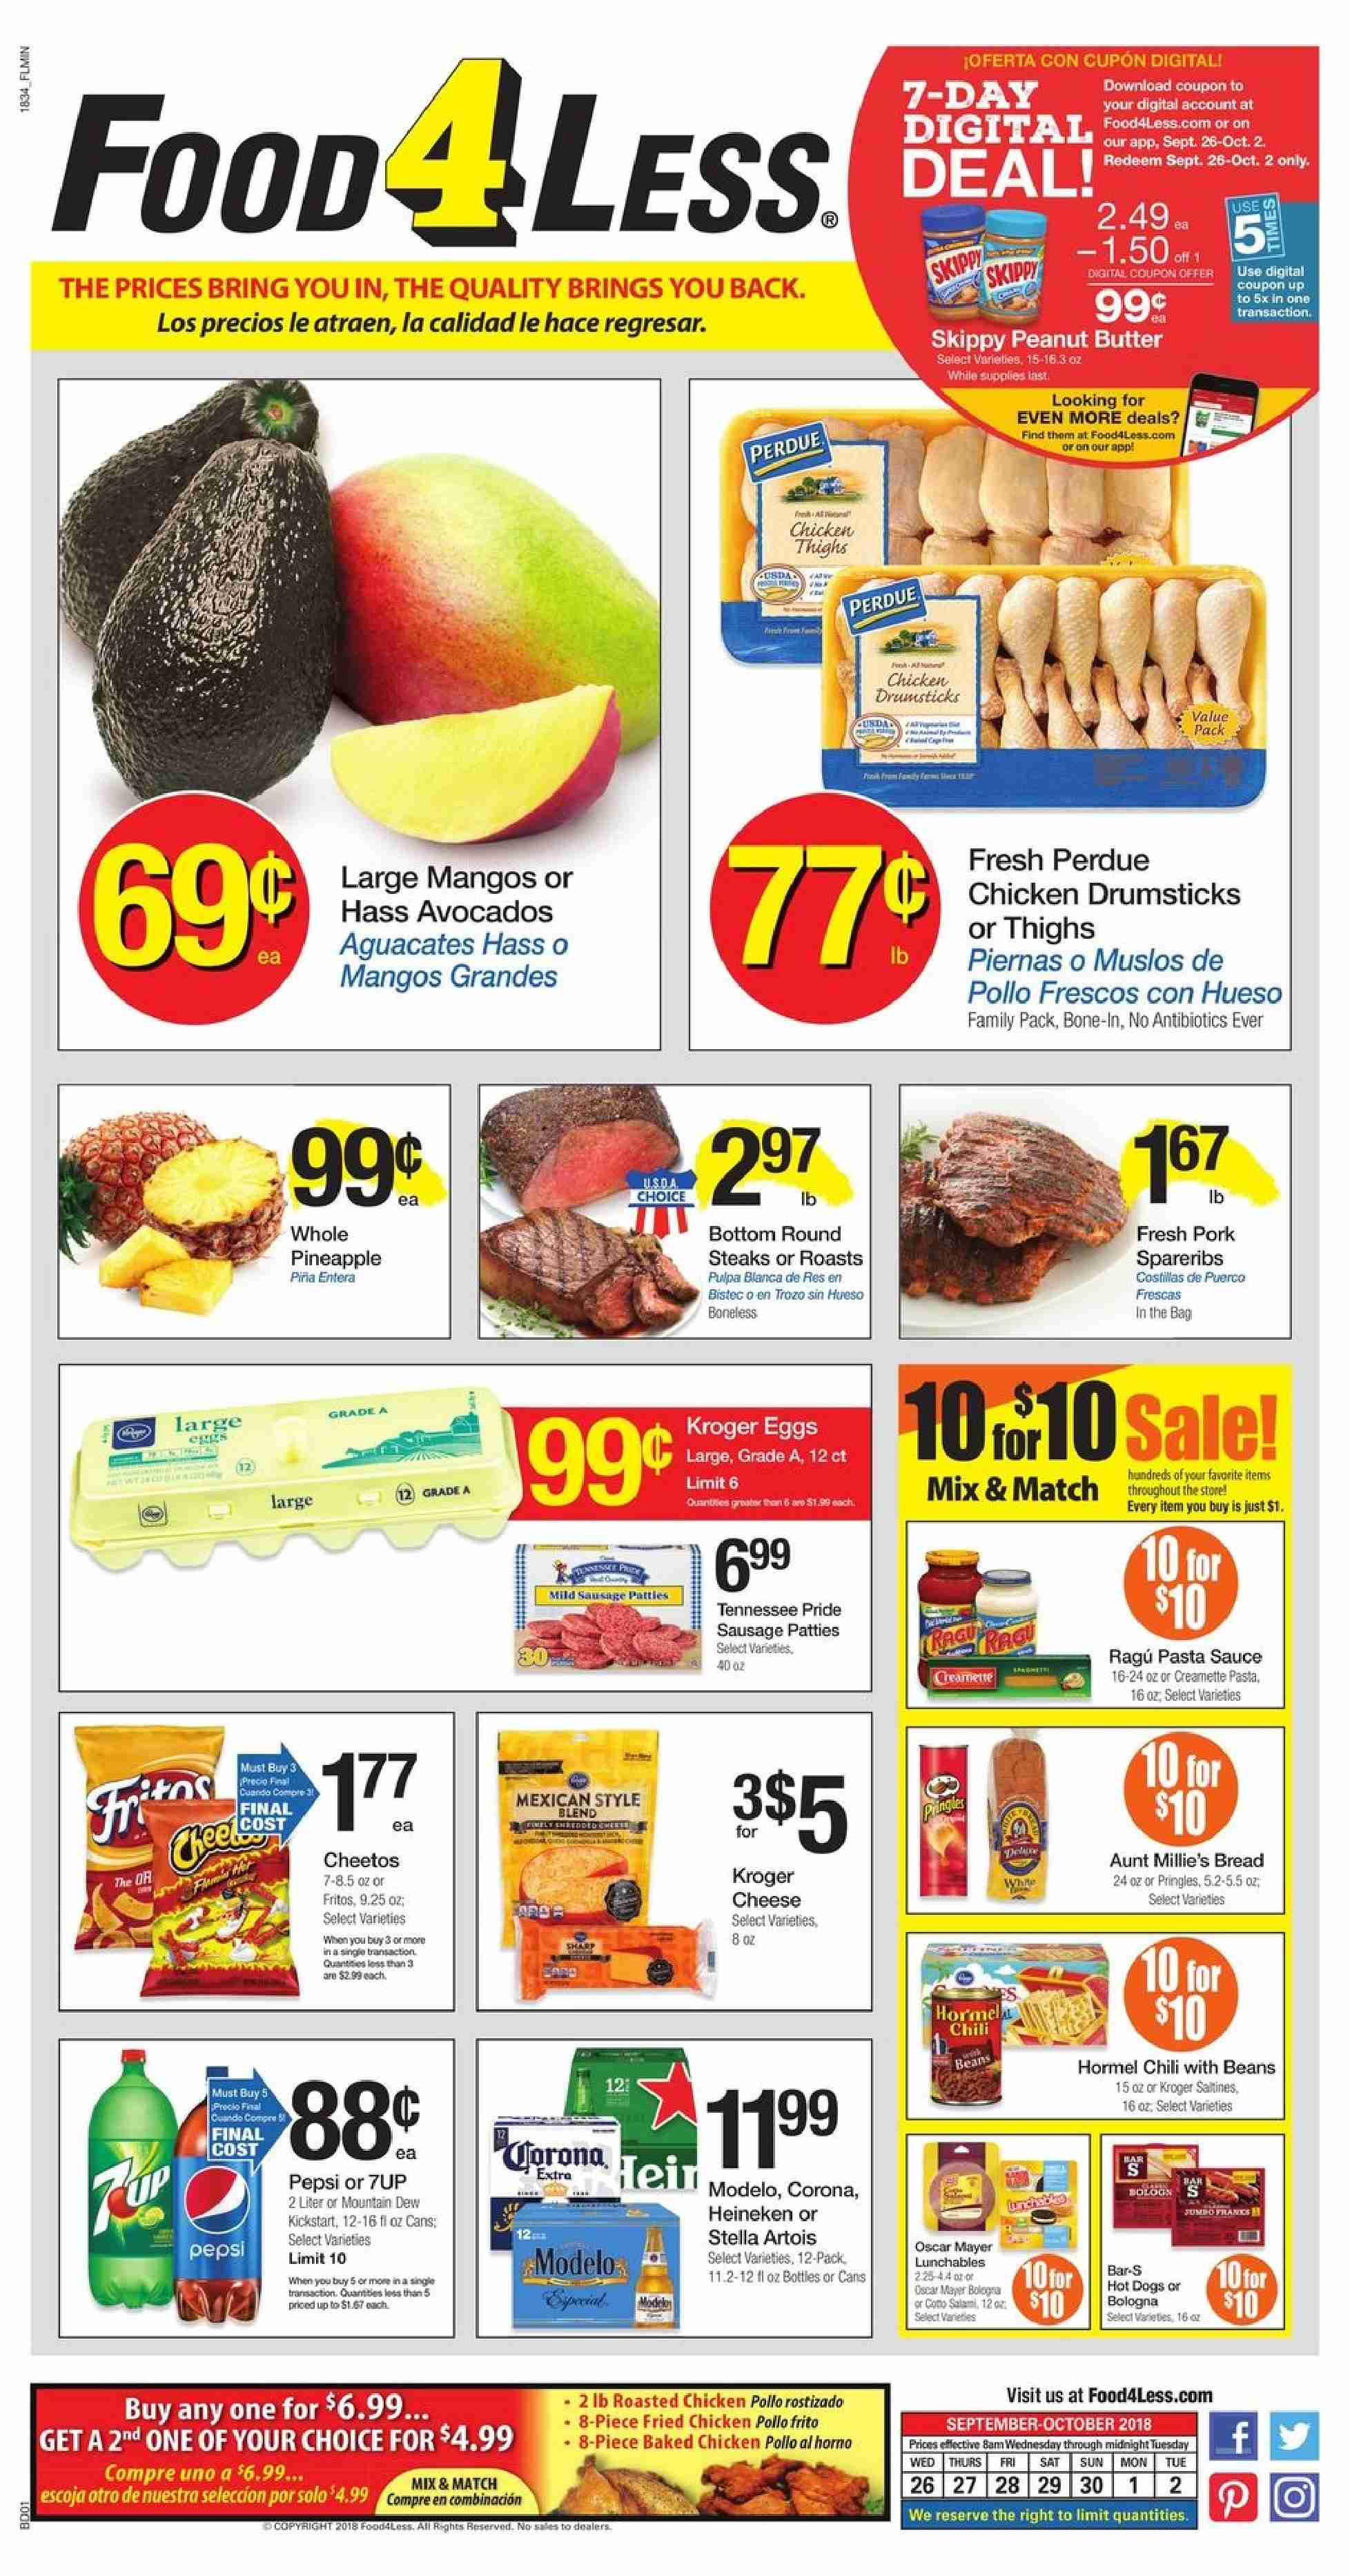 Food 4 Less Flyer  - 09.26.2018 - 10.02.2018. Page 1.